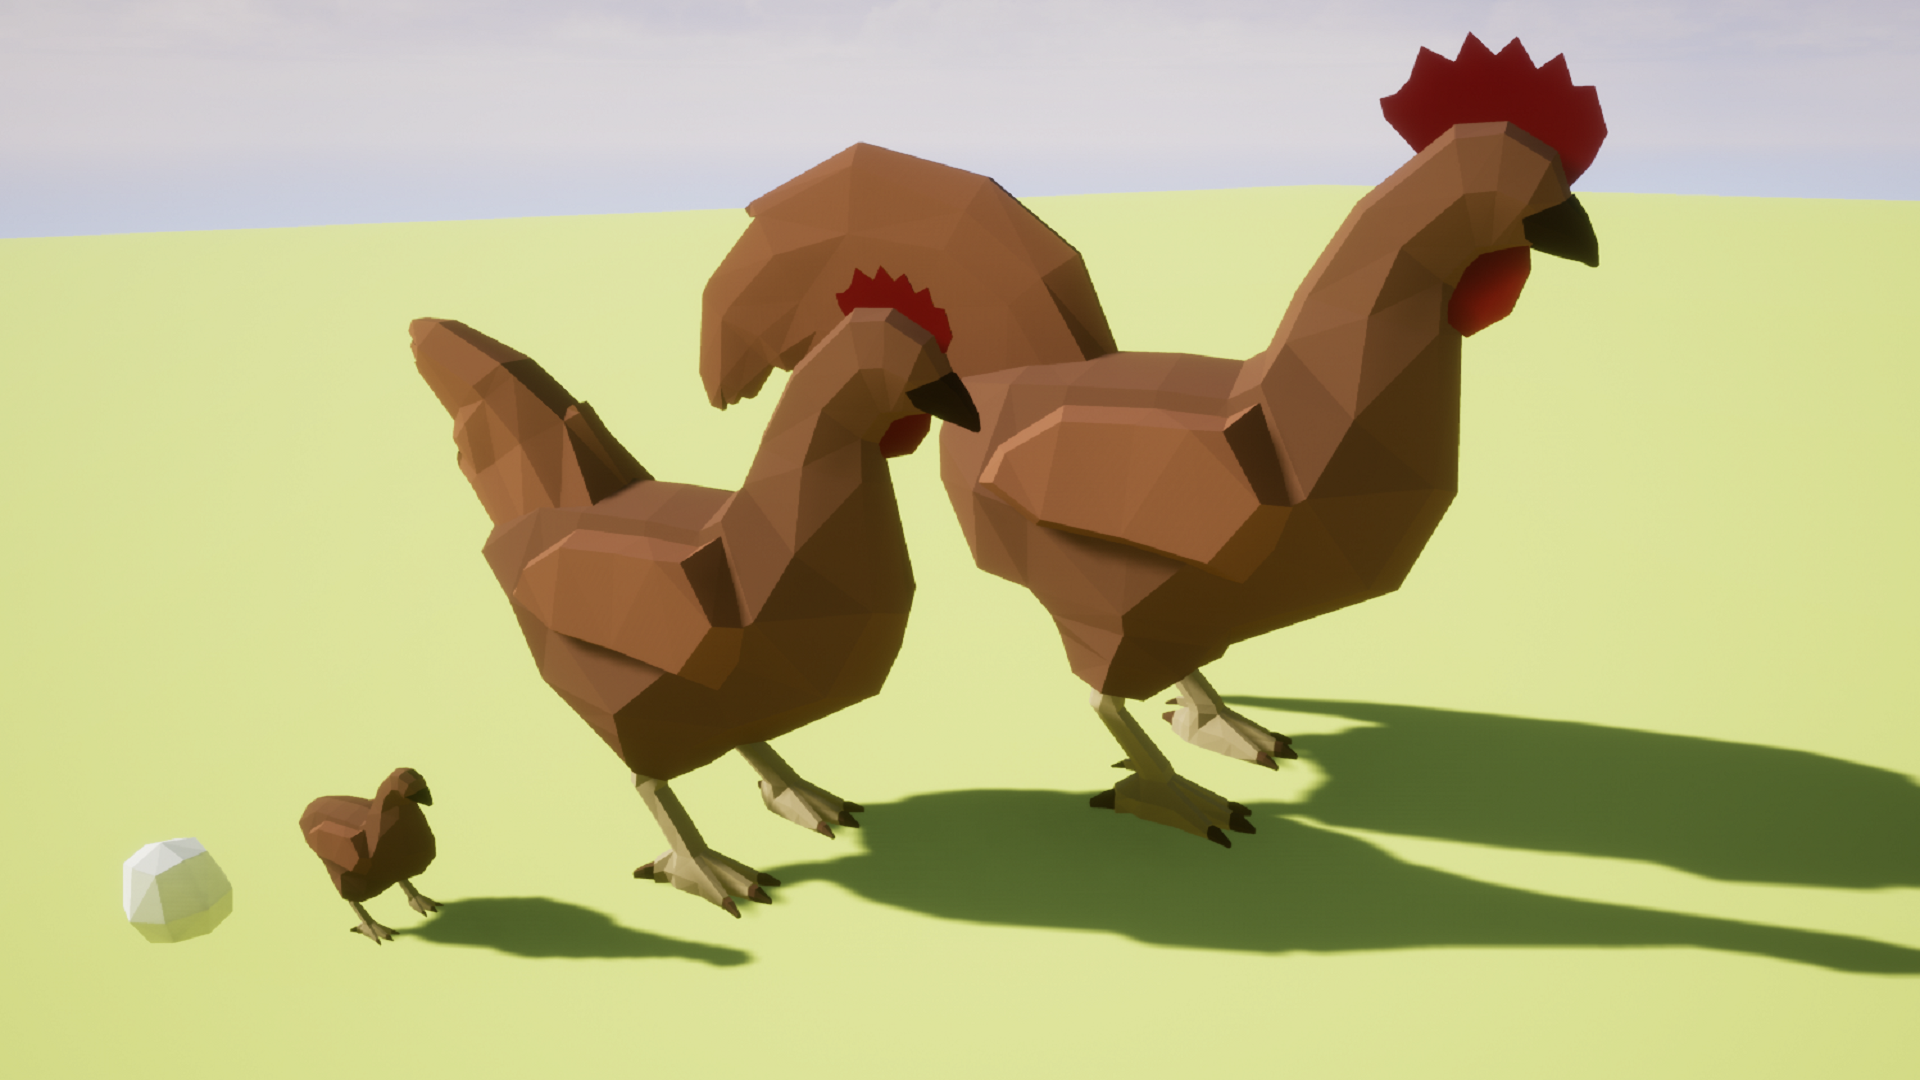 Low Poly Chickens by BryanO Art in Characters - UE4 Marketplace